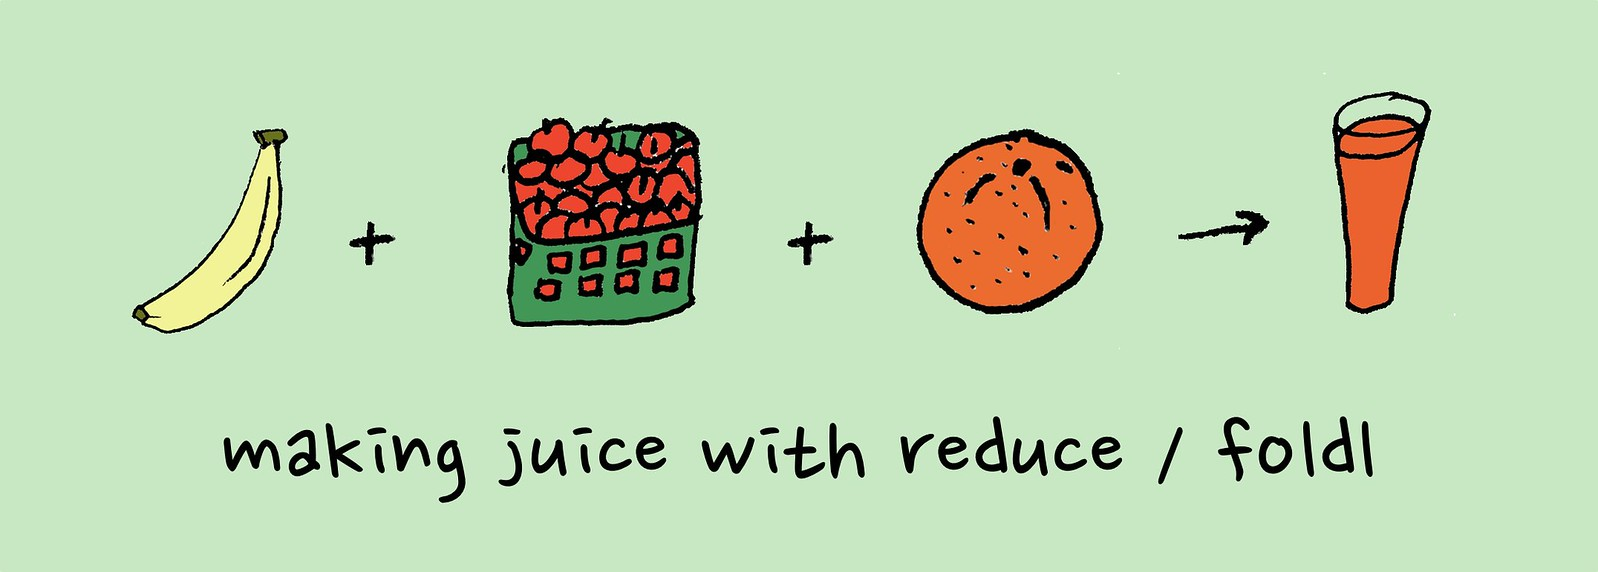 making juice with Array.reduce